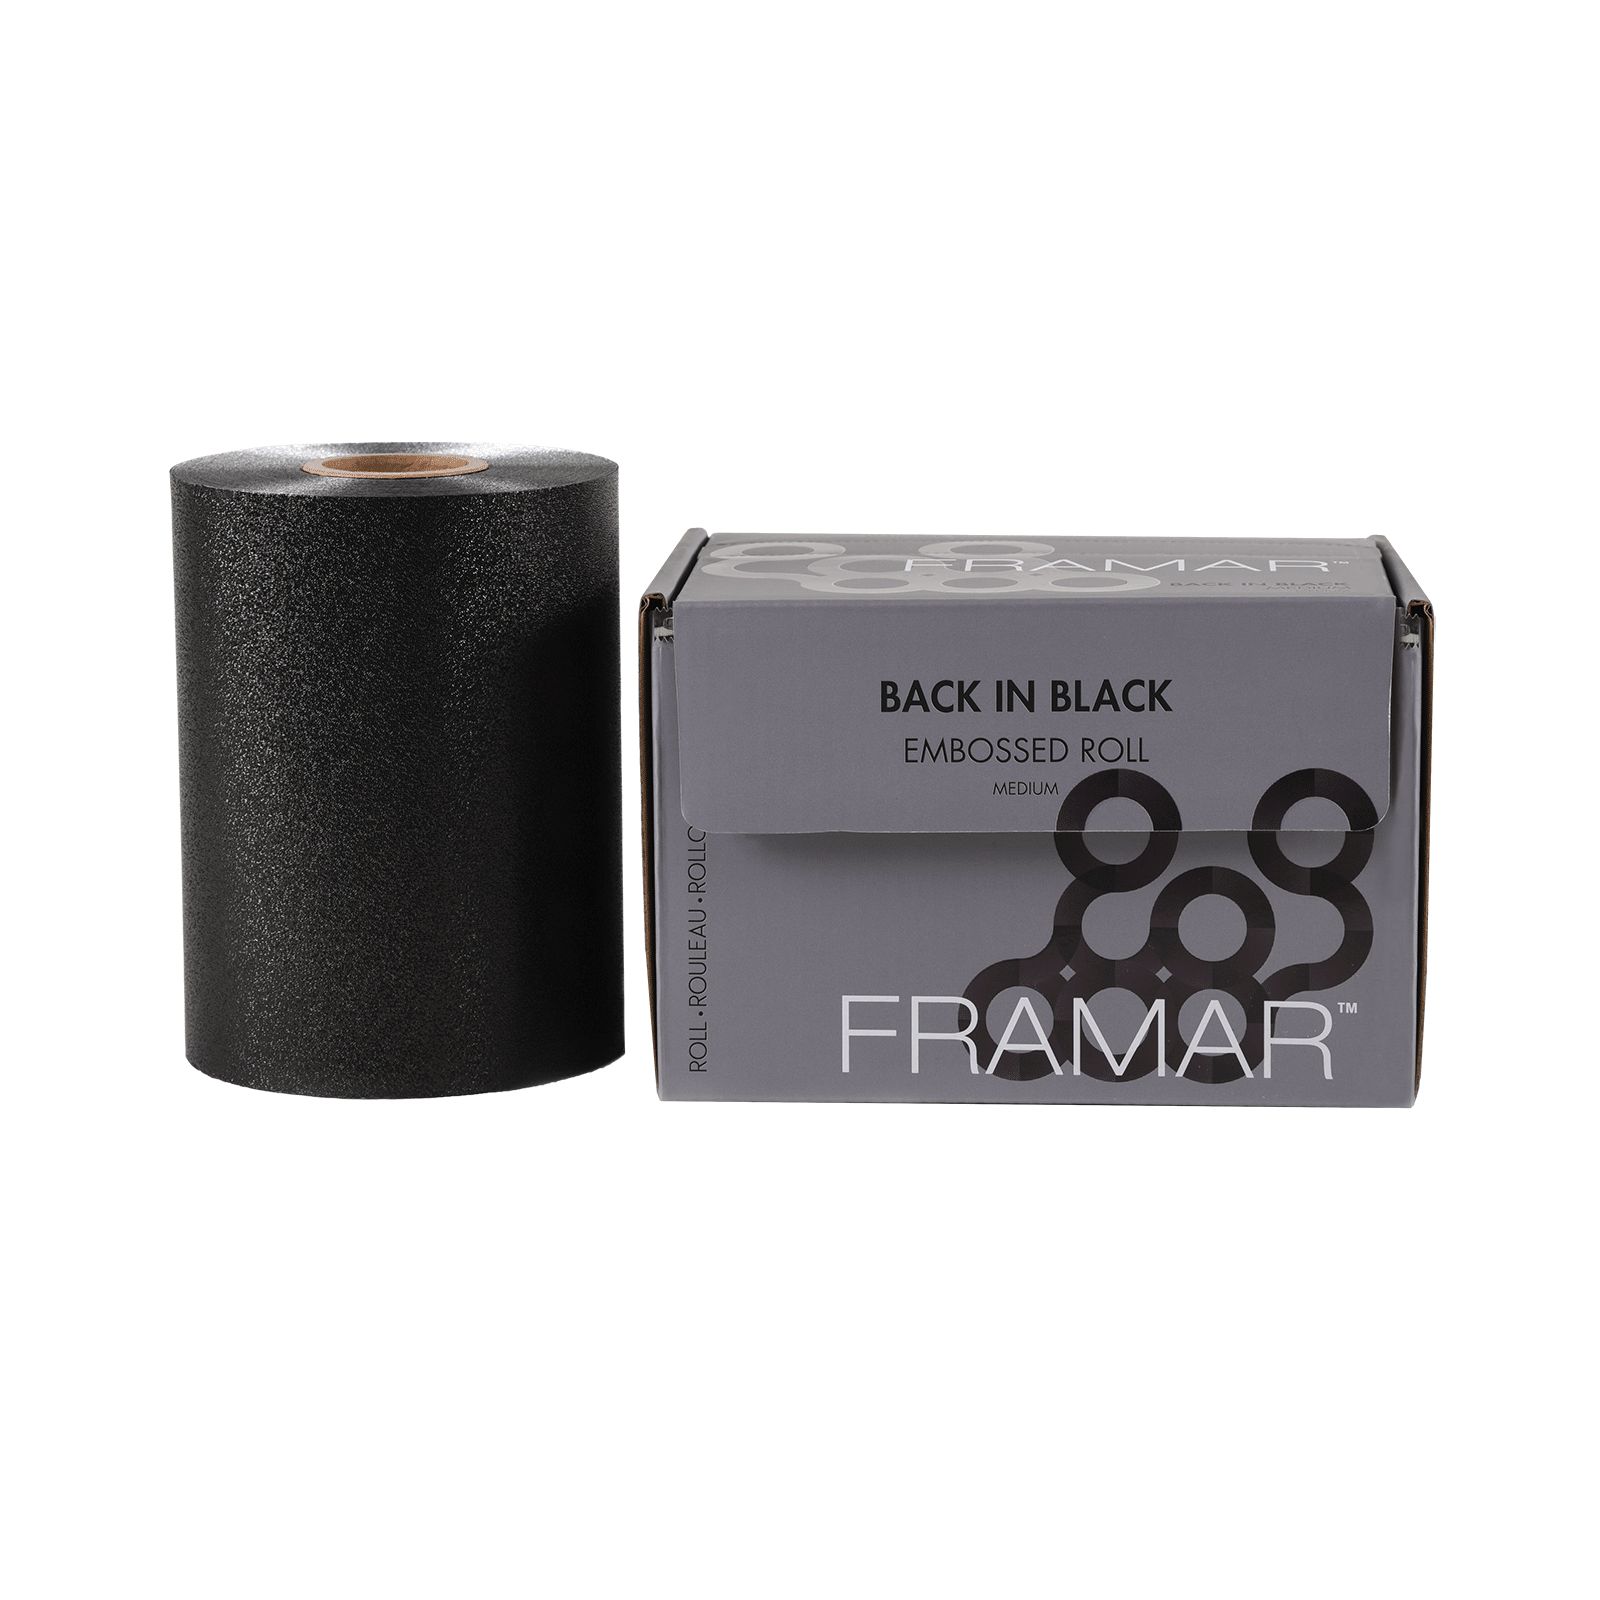 Back In Black Embossed Foil Roll